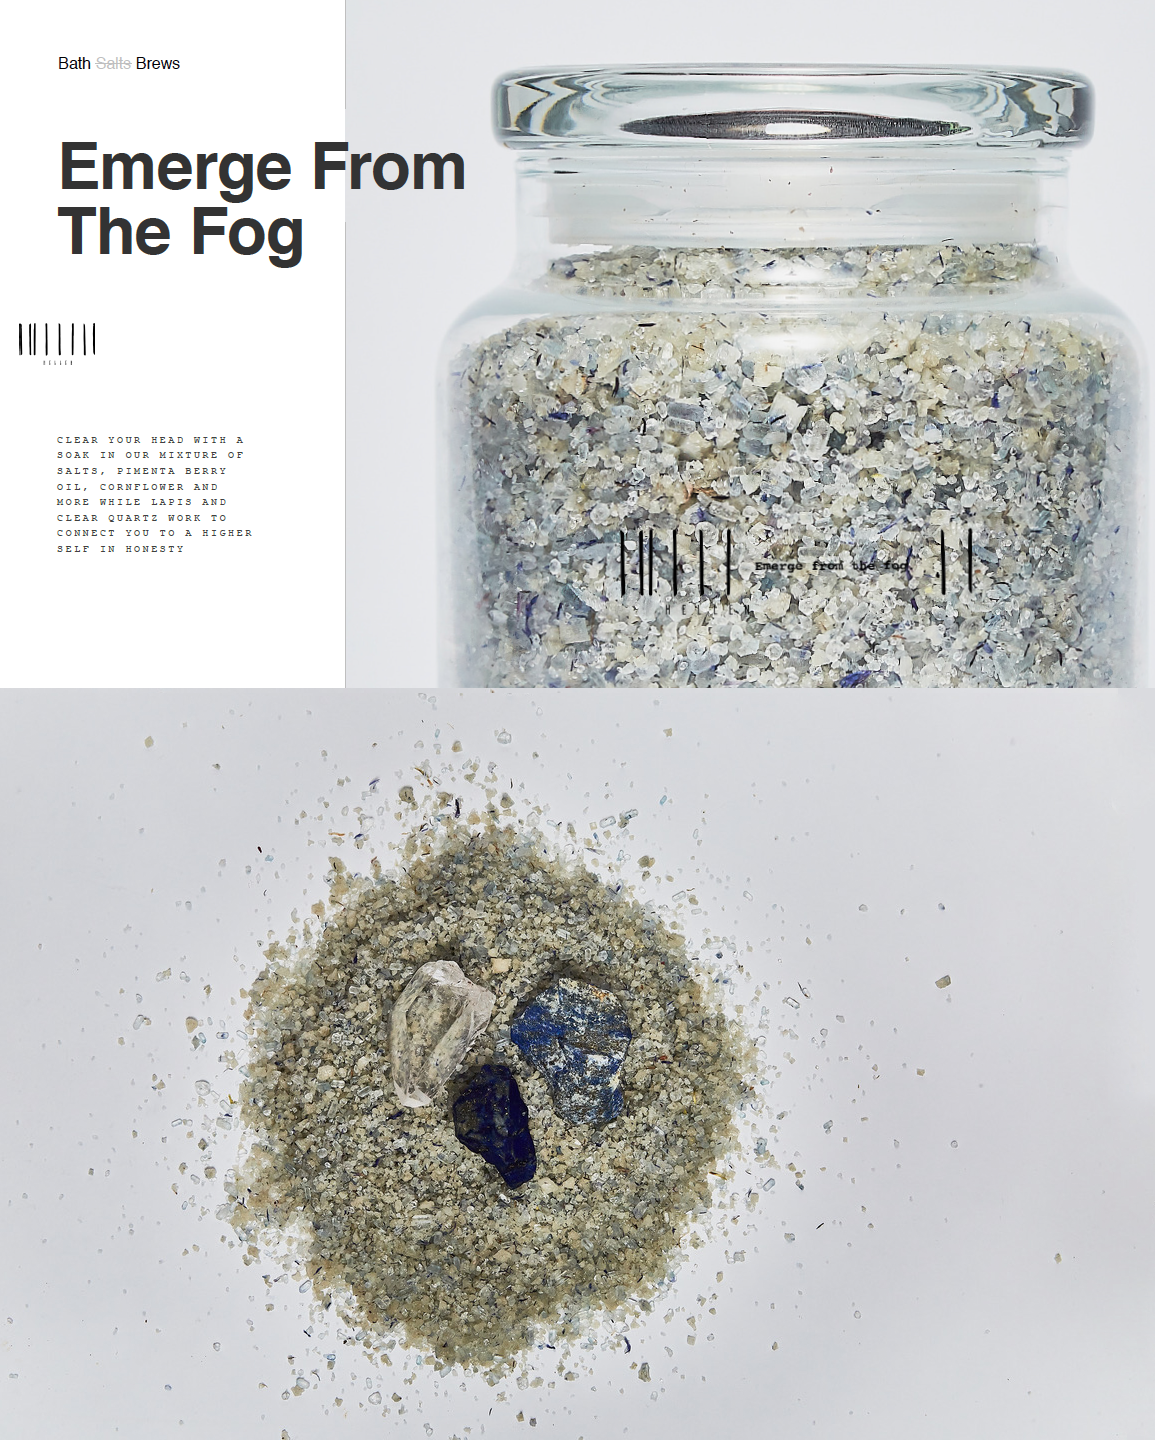 """Crystal & Herbal Bath Music by Dynasty Electrik - Los Angeles musical duo Dynasty Electrik have produced a new composition to accompany """"Emerge From the Fog"""", a crystal and herbal bath infusion from Bath Brew by Hellen NYC. The music is a 22 minute journey into the world of celestial sound featuring piano, crystal bowls, gong, voice, theremin, ambient electronic music and the sounds of nature. The bath features a mixture of salts, pimenta berry oil, and cornflower with lapis and clear quartz. Together, the bath and music are a perfect way to relax, rejuvenate, and create a sense of clarity, balance, and harmony.""""In many ways we are like musical instruments. Our hearts make a beat like a drum, our blood flows in a circulatory rhythm, and our minds are filled with the melody of thought. When we are out of tune, our bodies feel heavy, our minds feel filled with fog, and our spirits feel depressed. However, when the layers of our being are harmonized and in-tune, our bodies feel light and energetic, our minds feel clear and balanced, and our spirits soar. Music is a potent form of energy which can harmonize the layers of our being and bring us back in-tune. Taking a crystal and herbal infused bath is a naturally healing activity and together with the magic of music, it is a powerful means to create greater wellness, clarity, and peace in our lives. It was a great pleasure and joy to create the music for Emerge From the Fog, and it is our hope that it will bring you great pleasure and joy as well!"""" – Seth Misterka"""